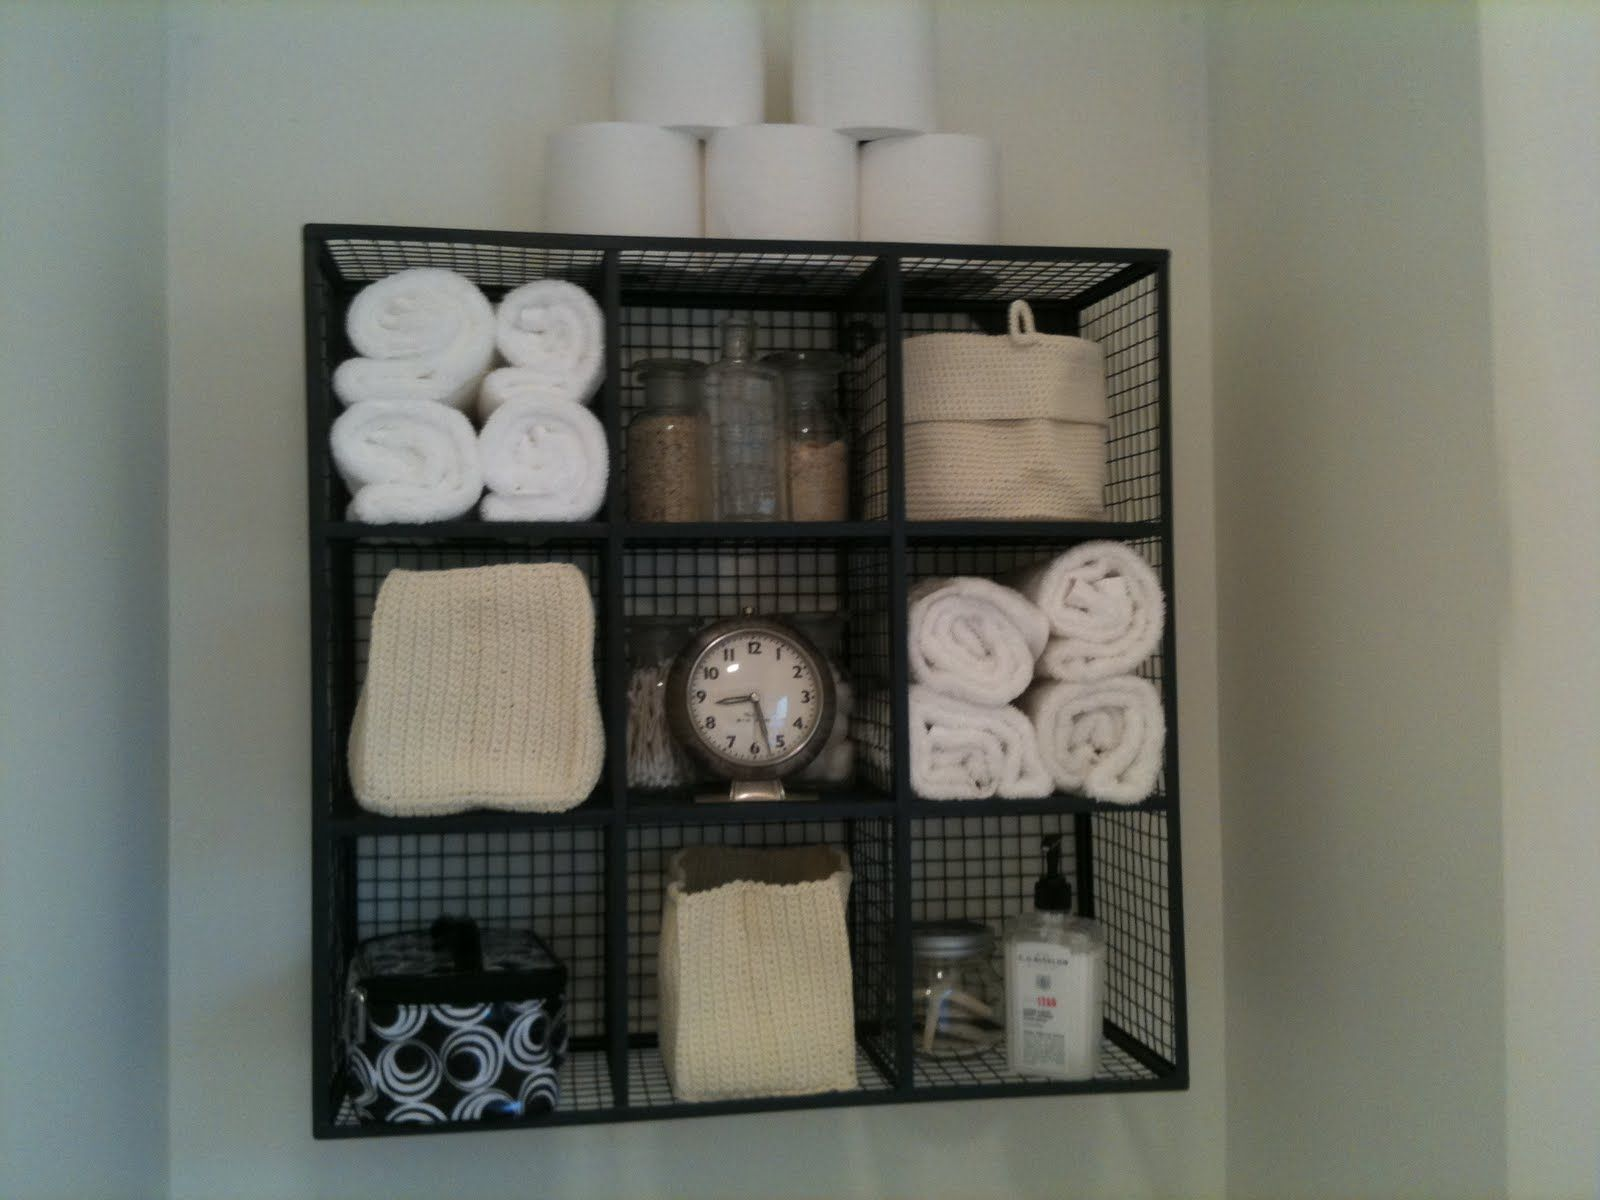 17 Brilliant Over The Toilet Storage Ideas Toilet